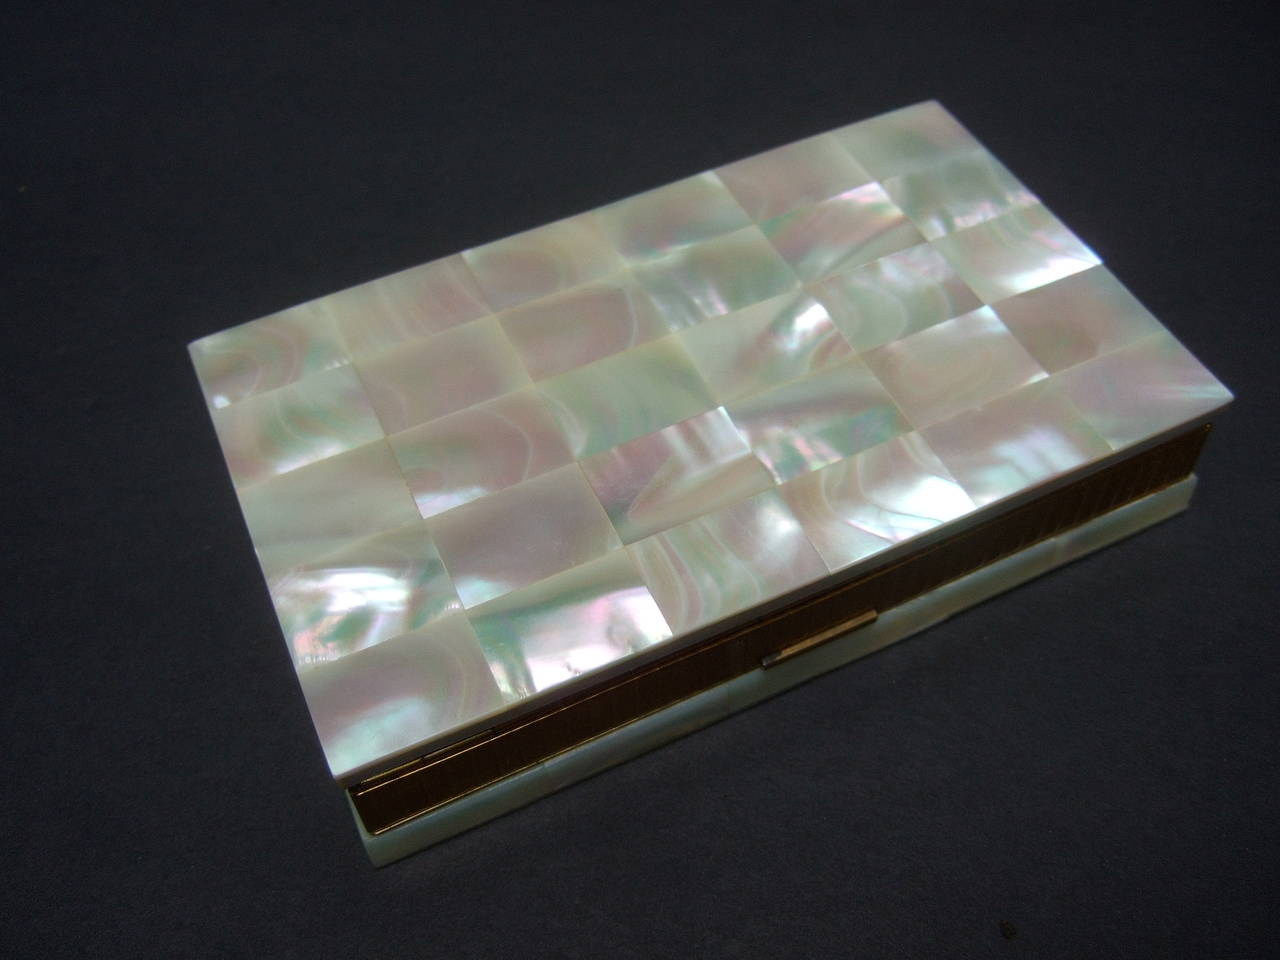 Opulent Mother of Pearl Compact Cigarette Case Clutch 2